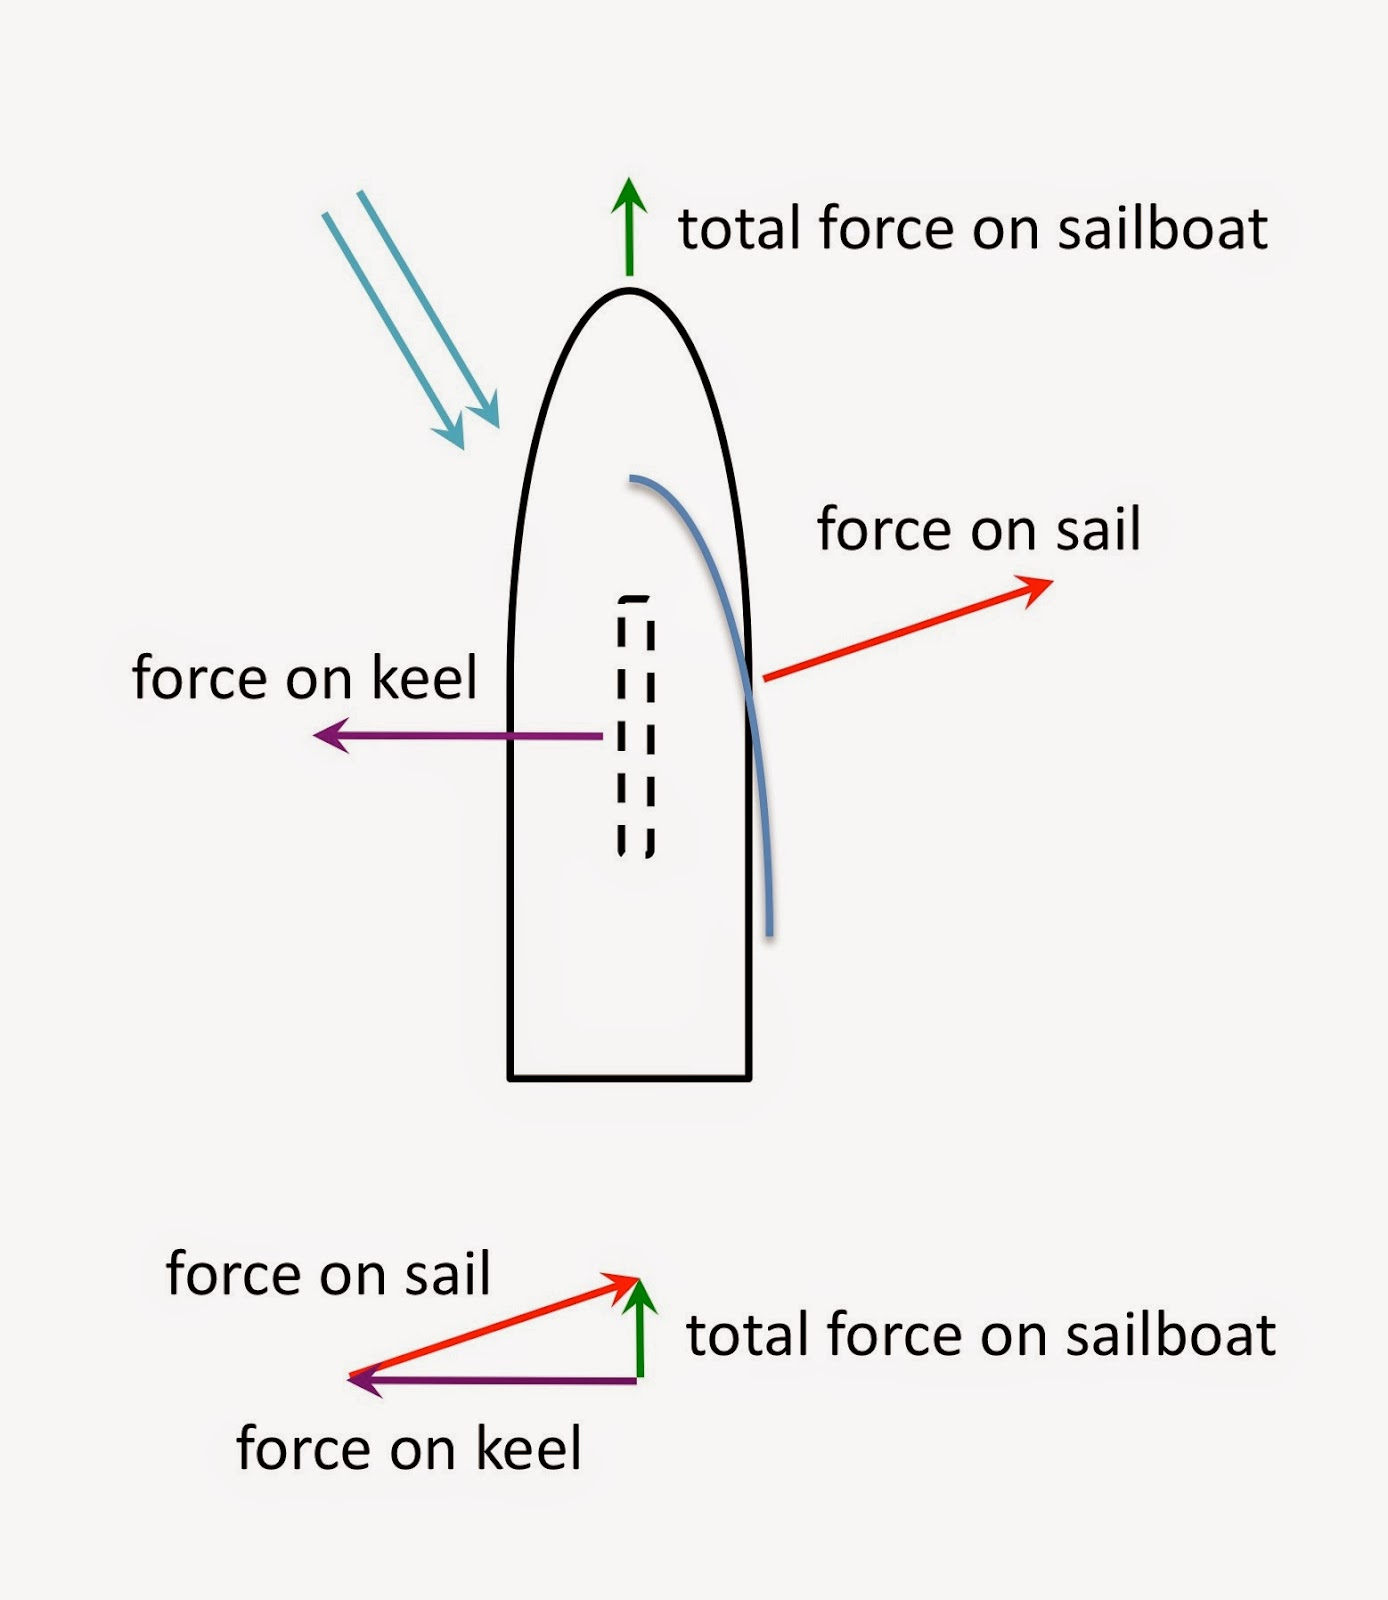 medium resolution of forces acting on a sailboat cancel each other such that the total force moves the sailboat forward the downward pointing keel is outlined by the dashed